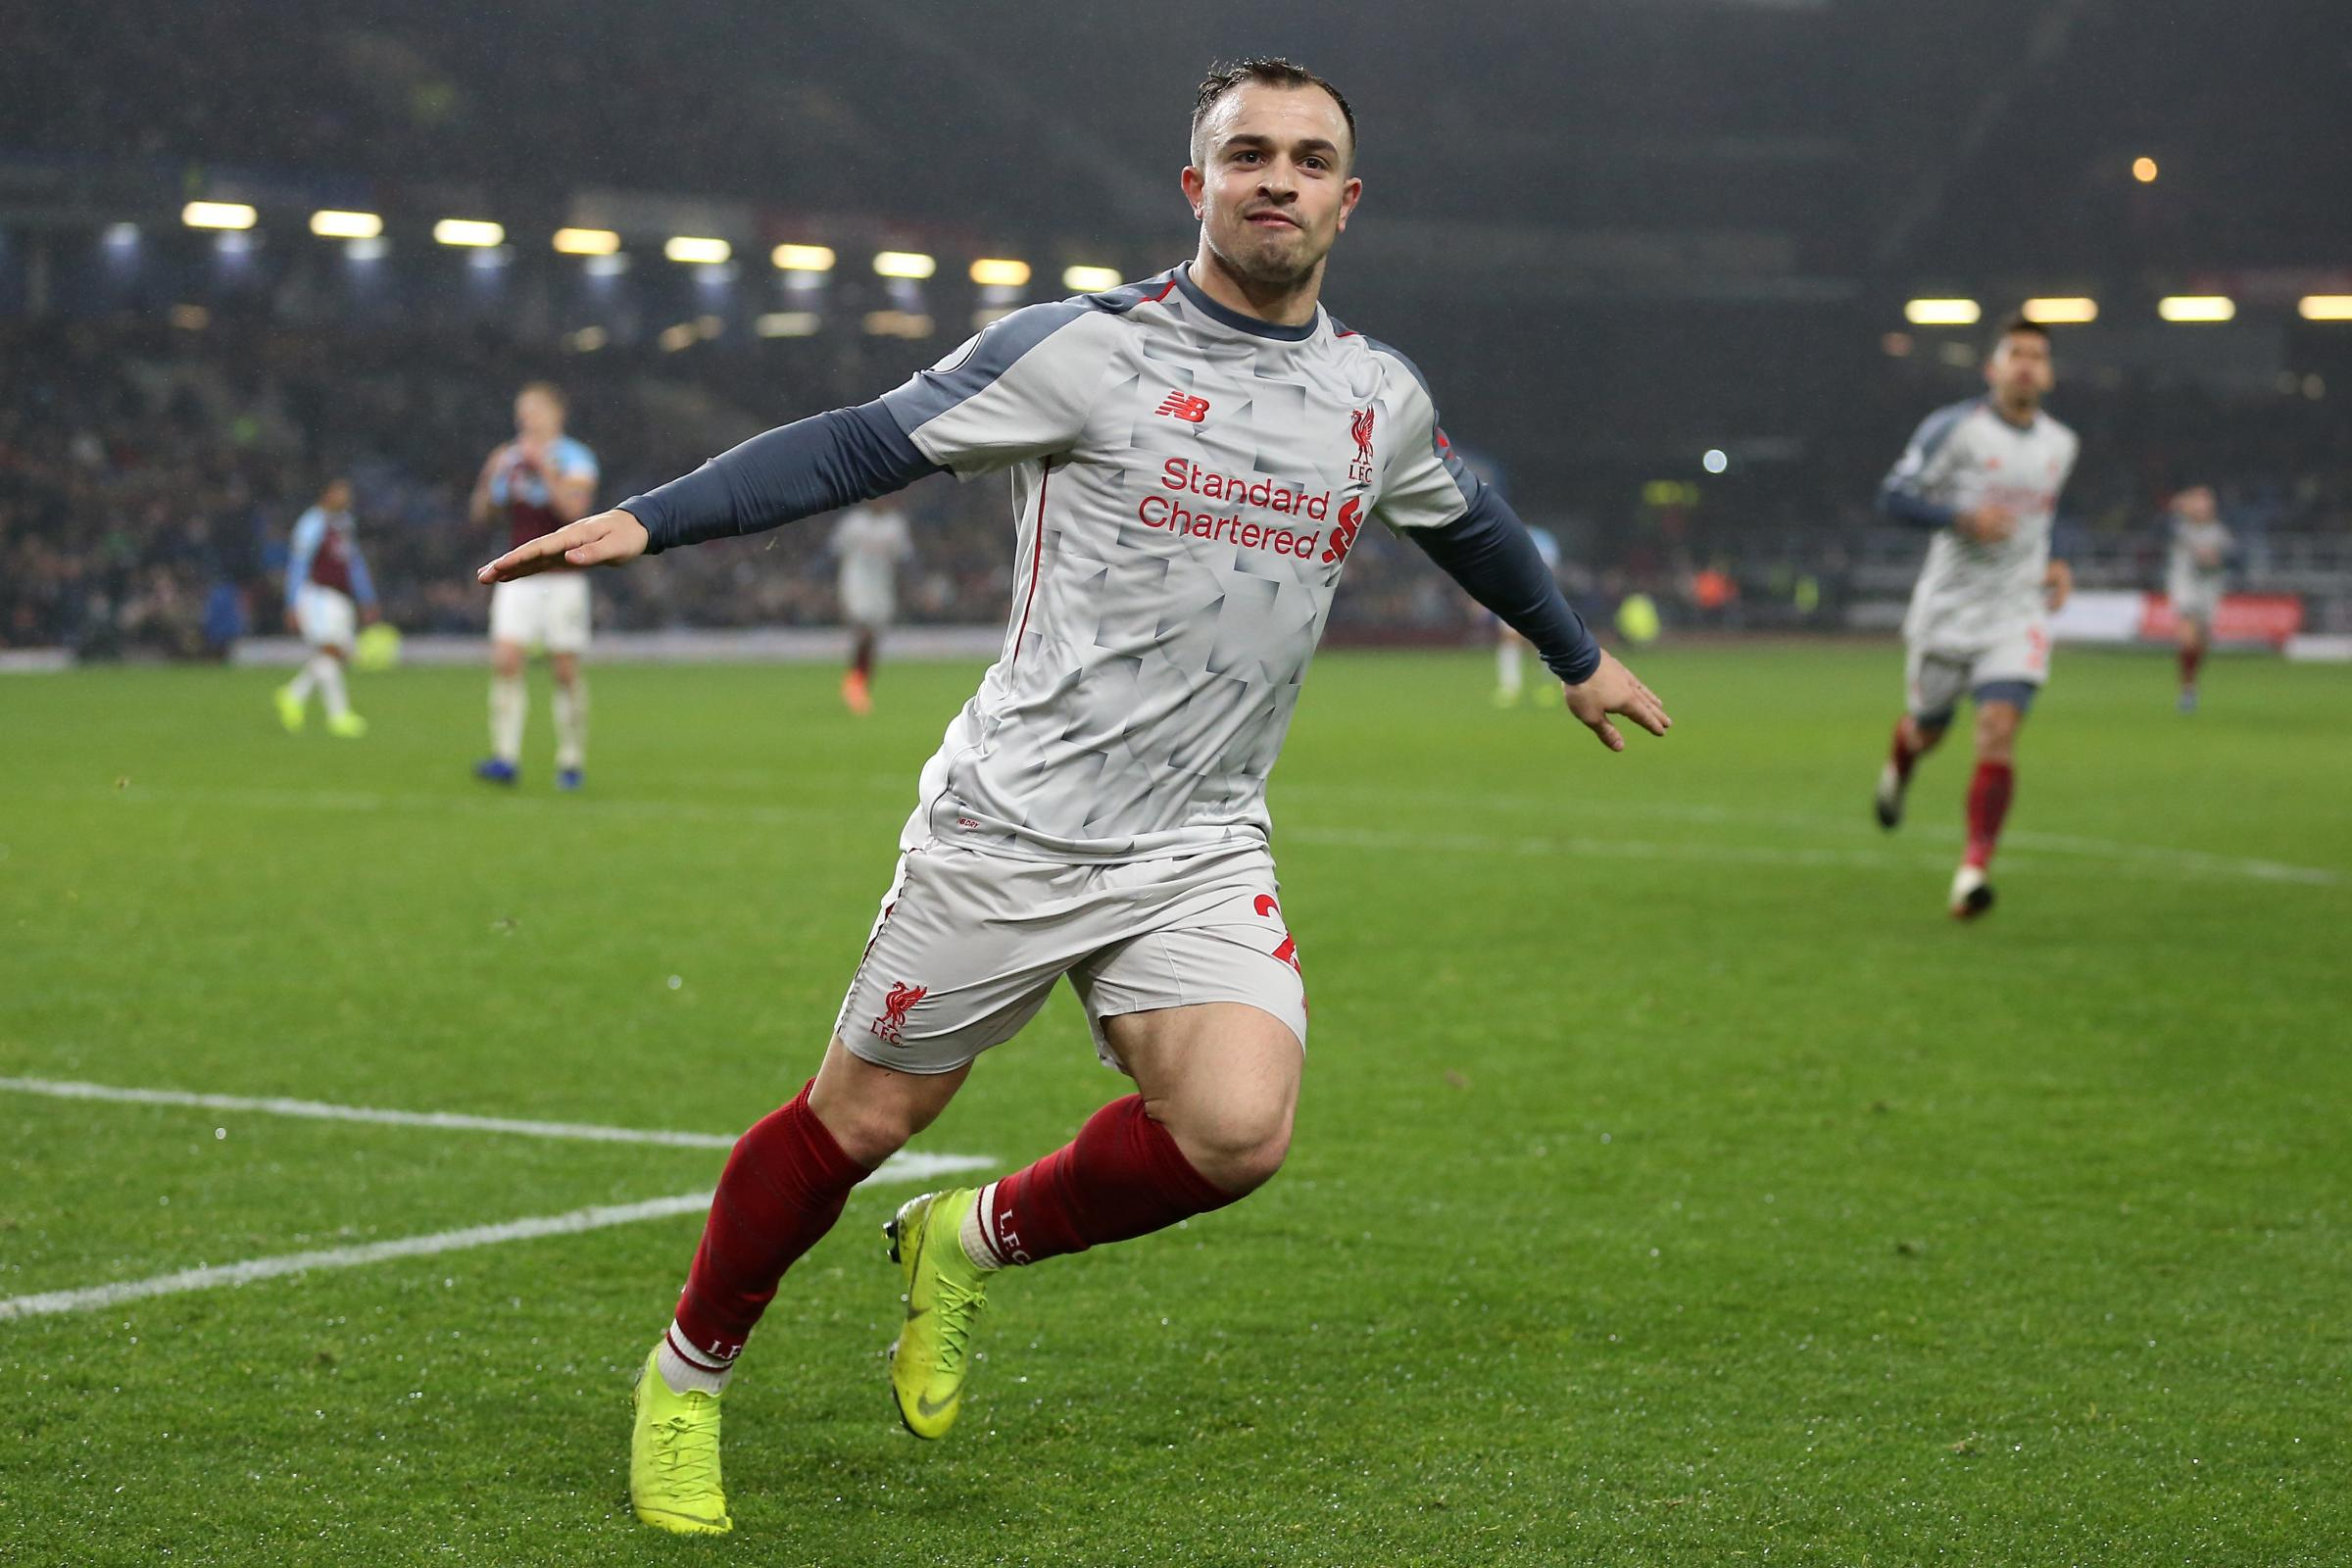 Liverpool's Xherdan Shaqiri believes a bold approach is the only route to success.